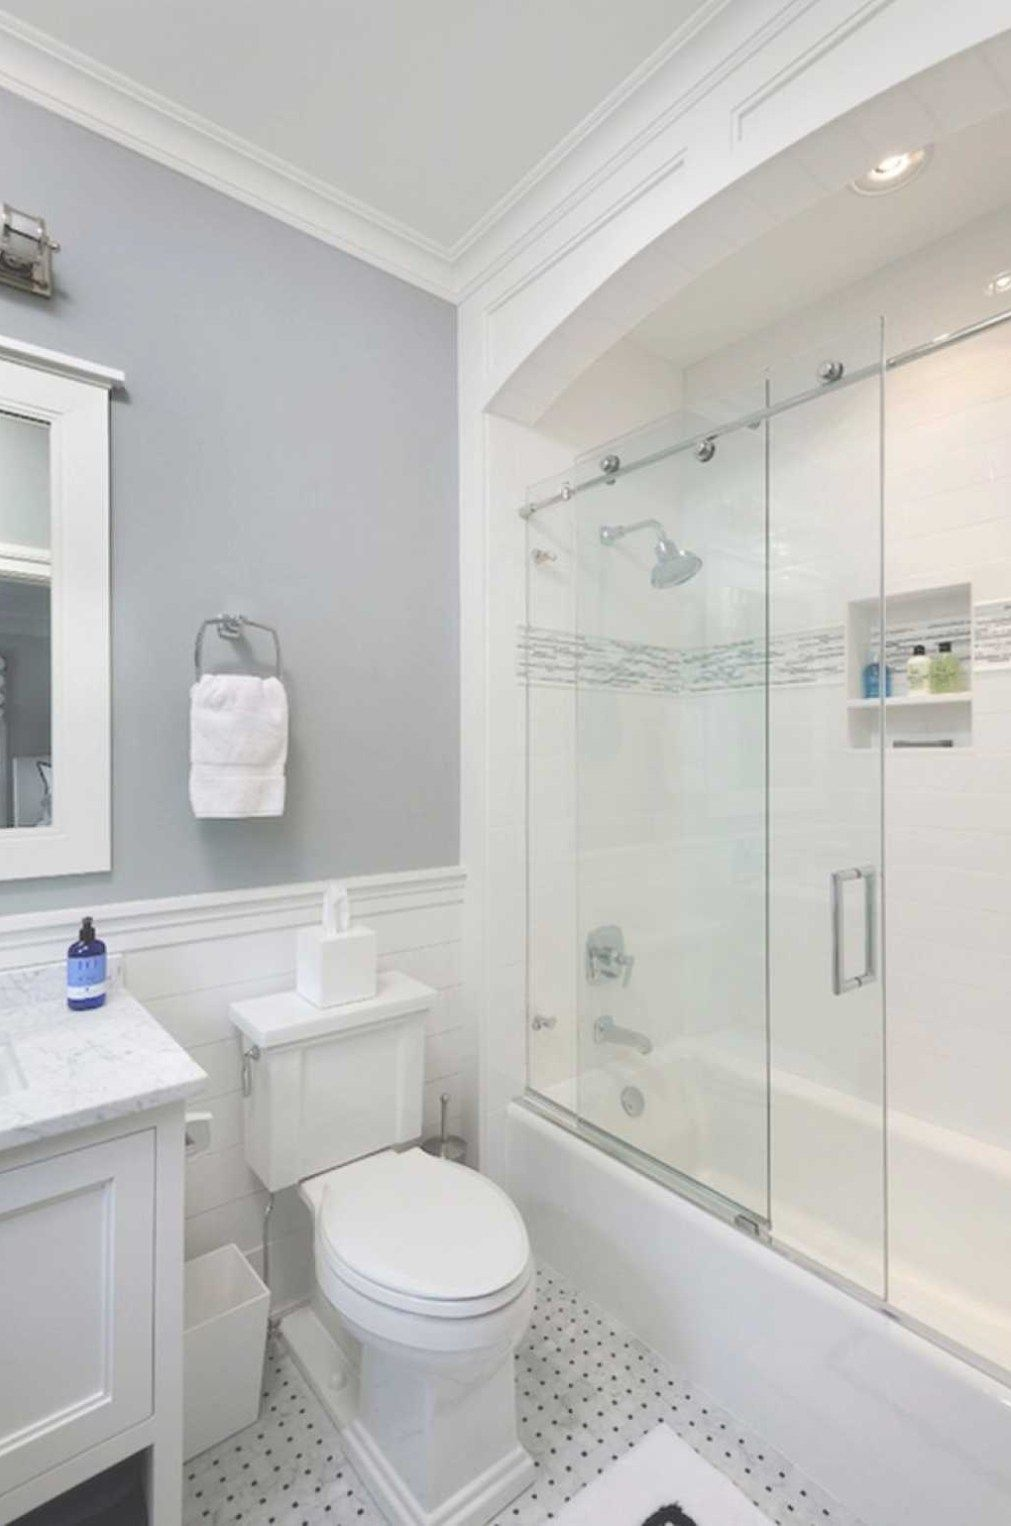 10 ideas about tub shower combo on | bathroom tub with #regard to ...